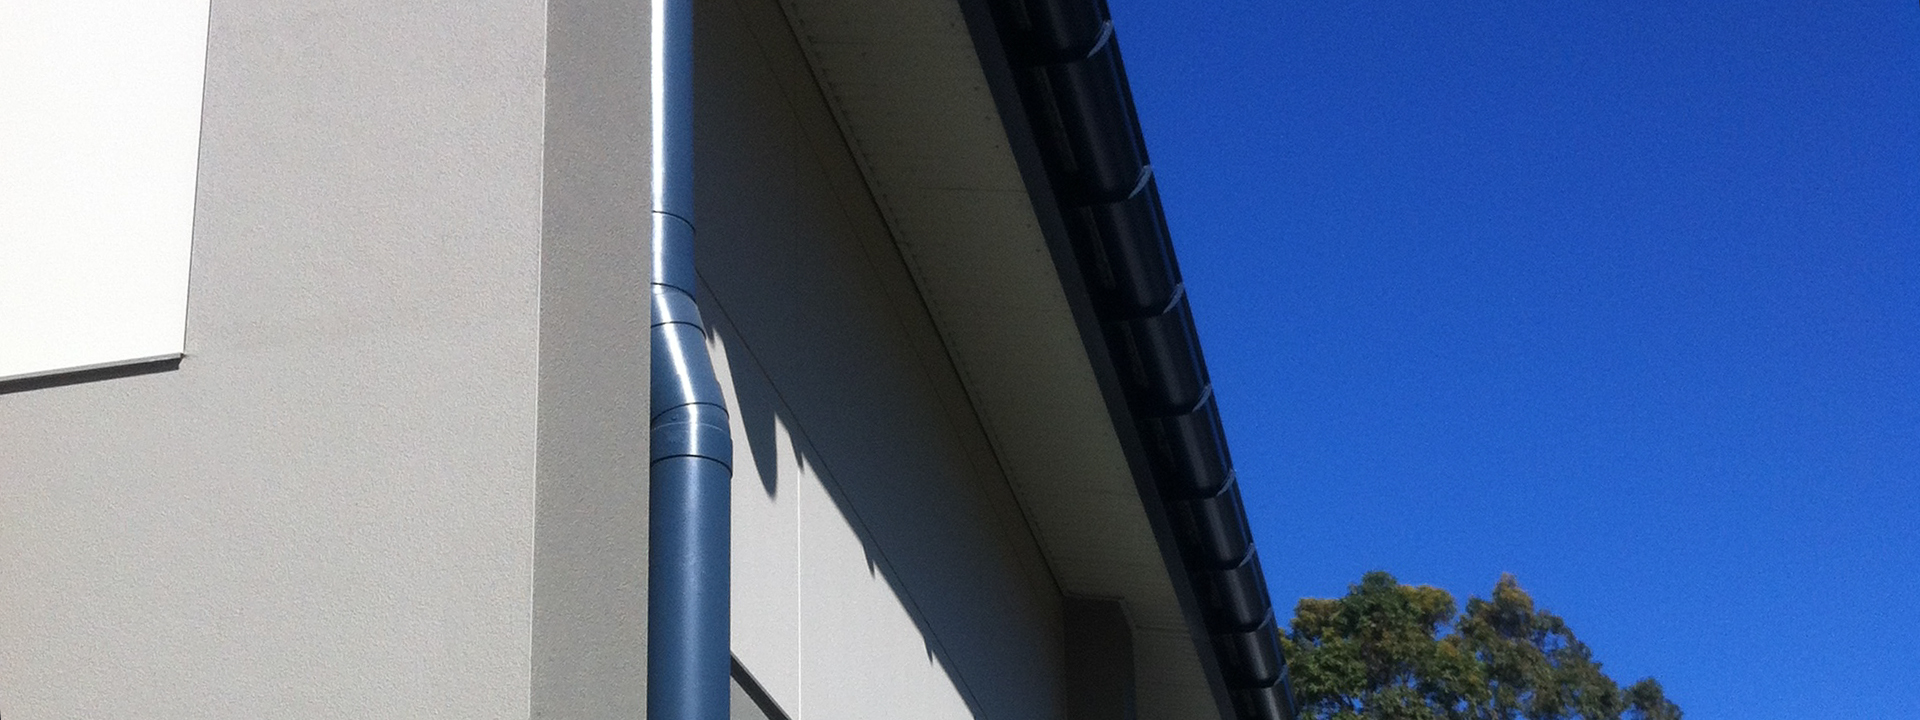 Gutter, Gutter Guard & Downpipes